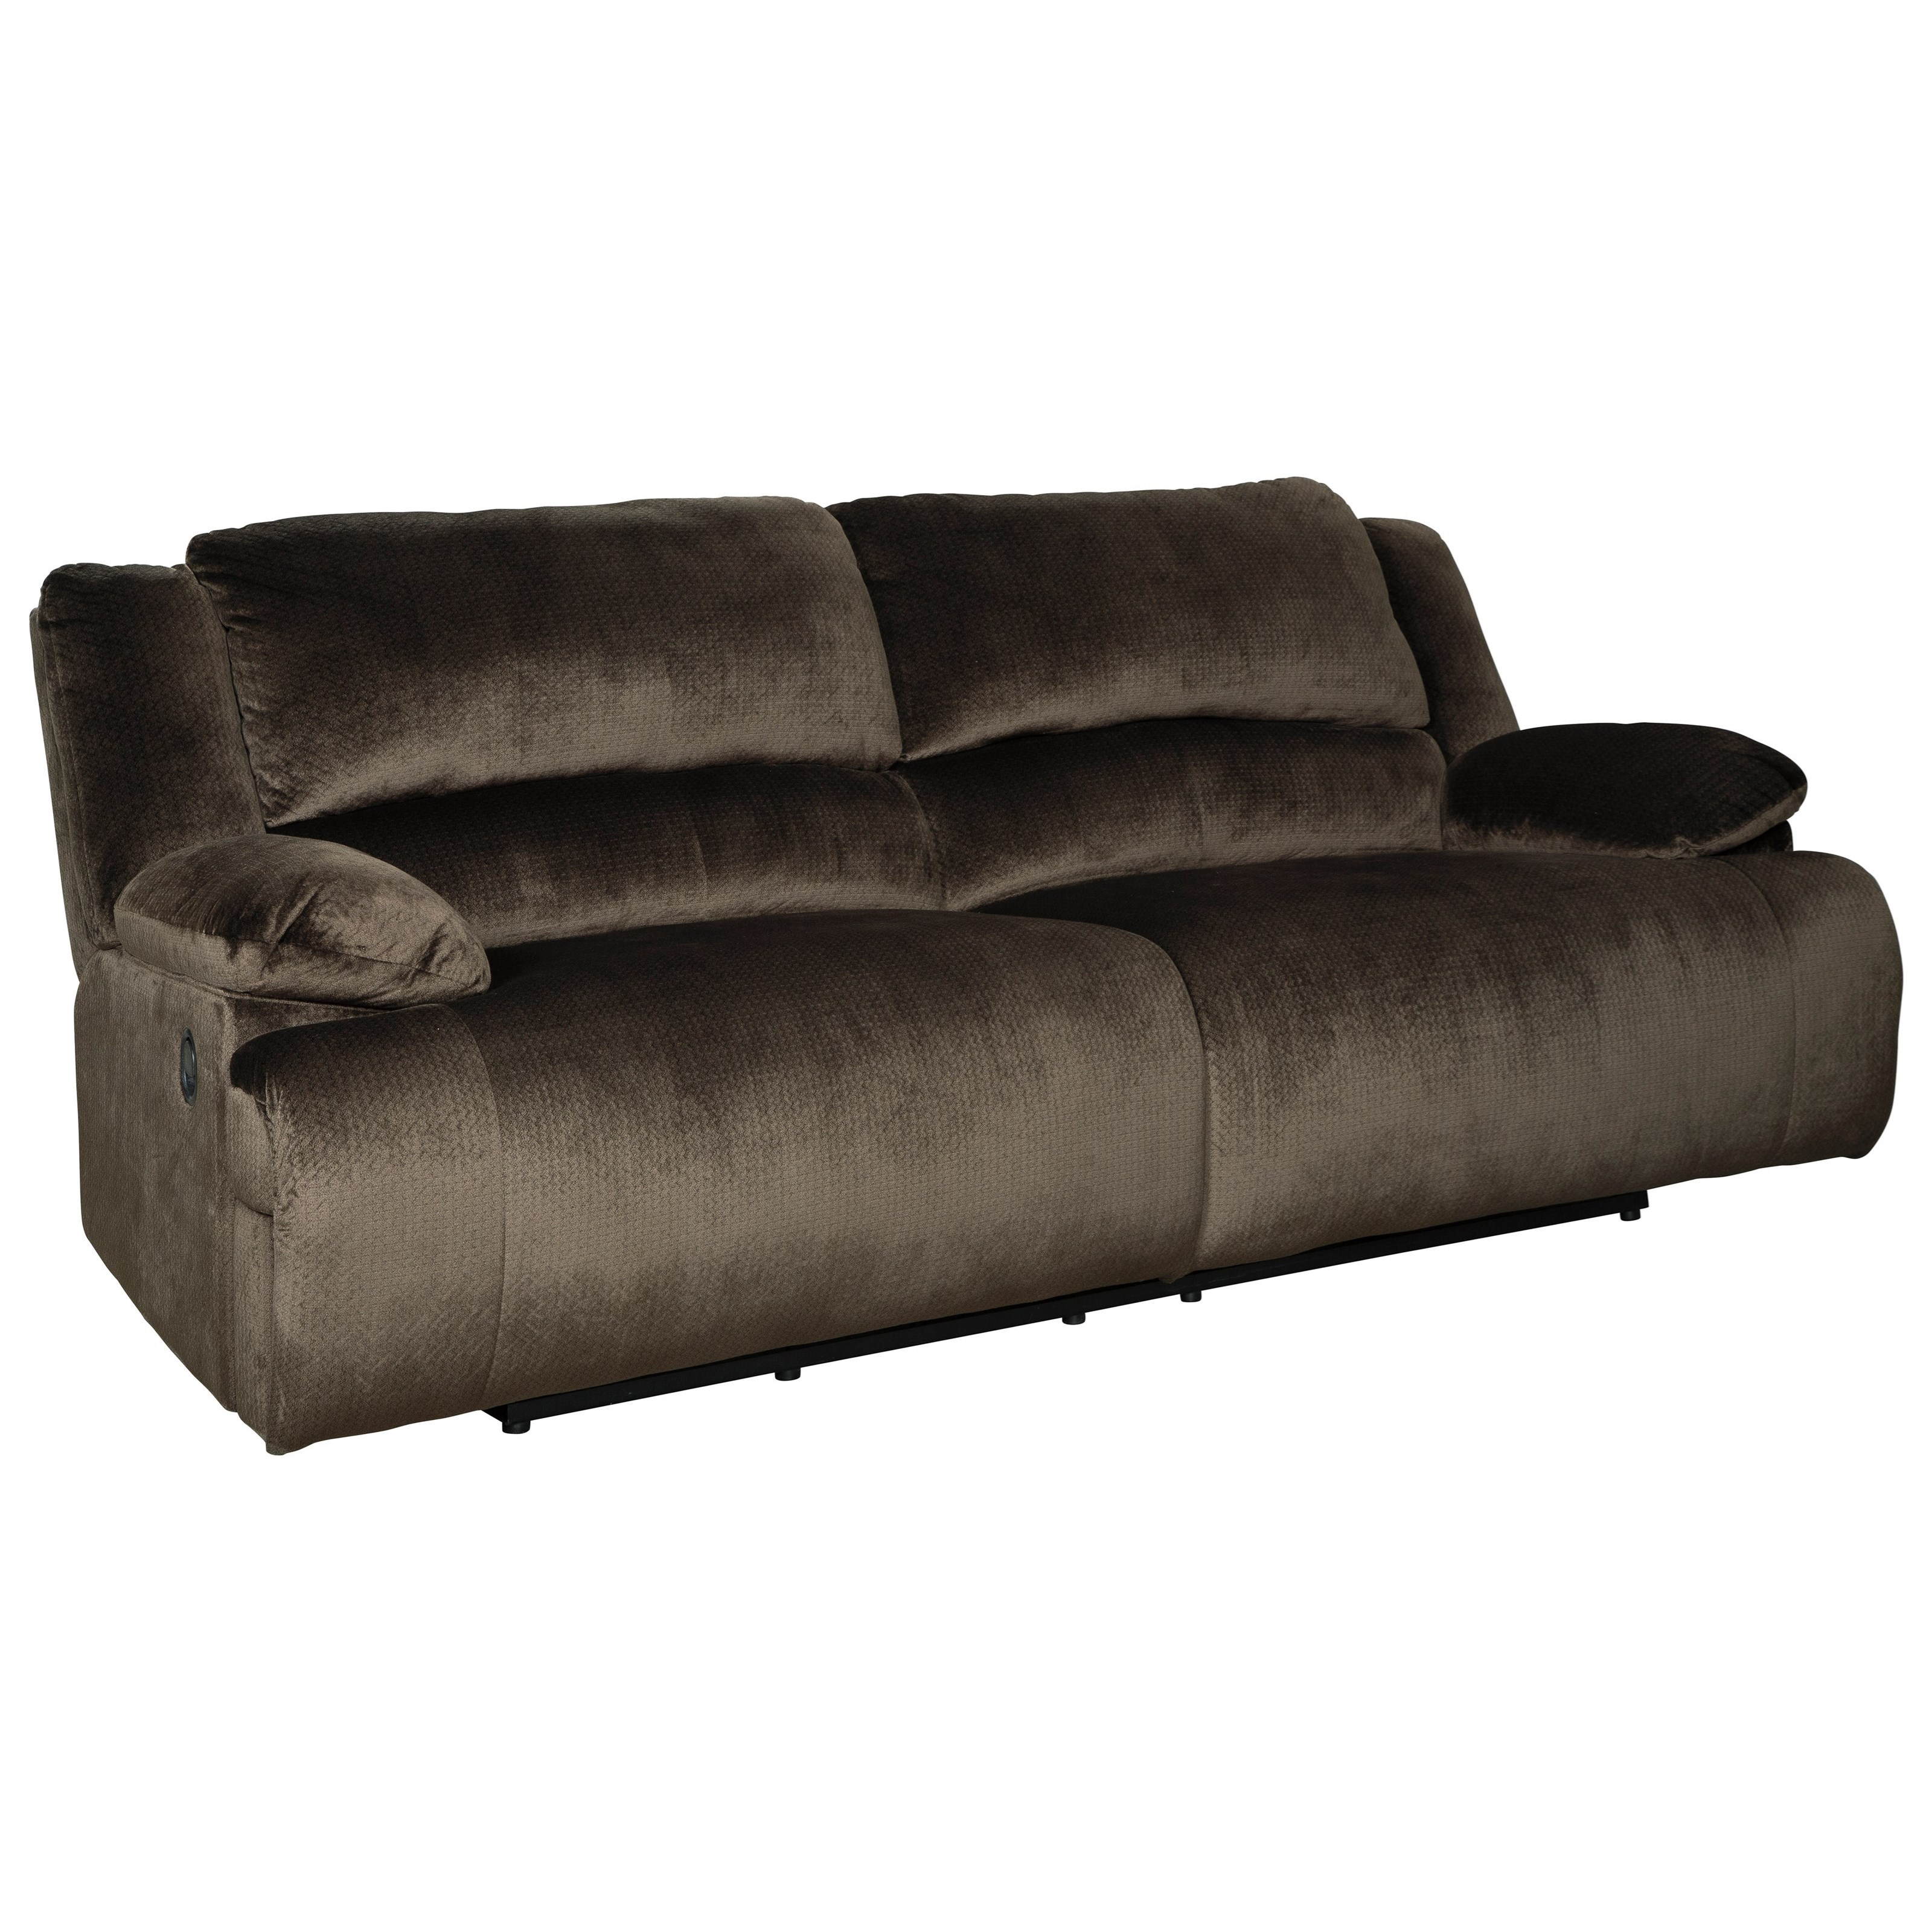 Clonmel 2 Seat Reclining Sofa by Ashley (Signature Design) at Johnny Janosik